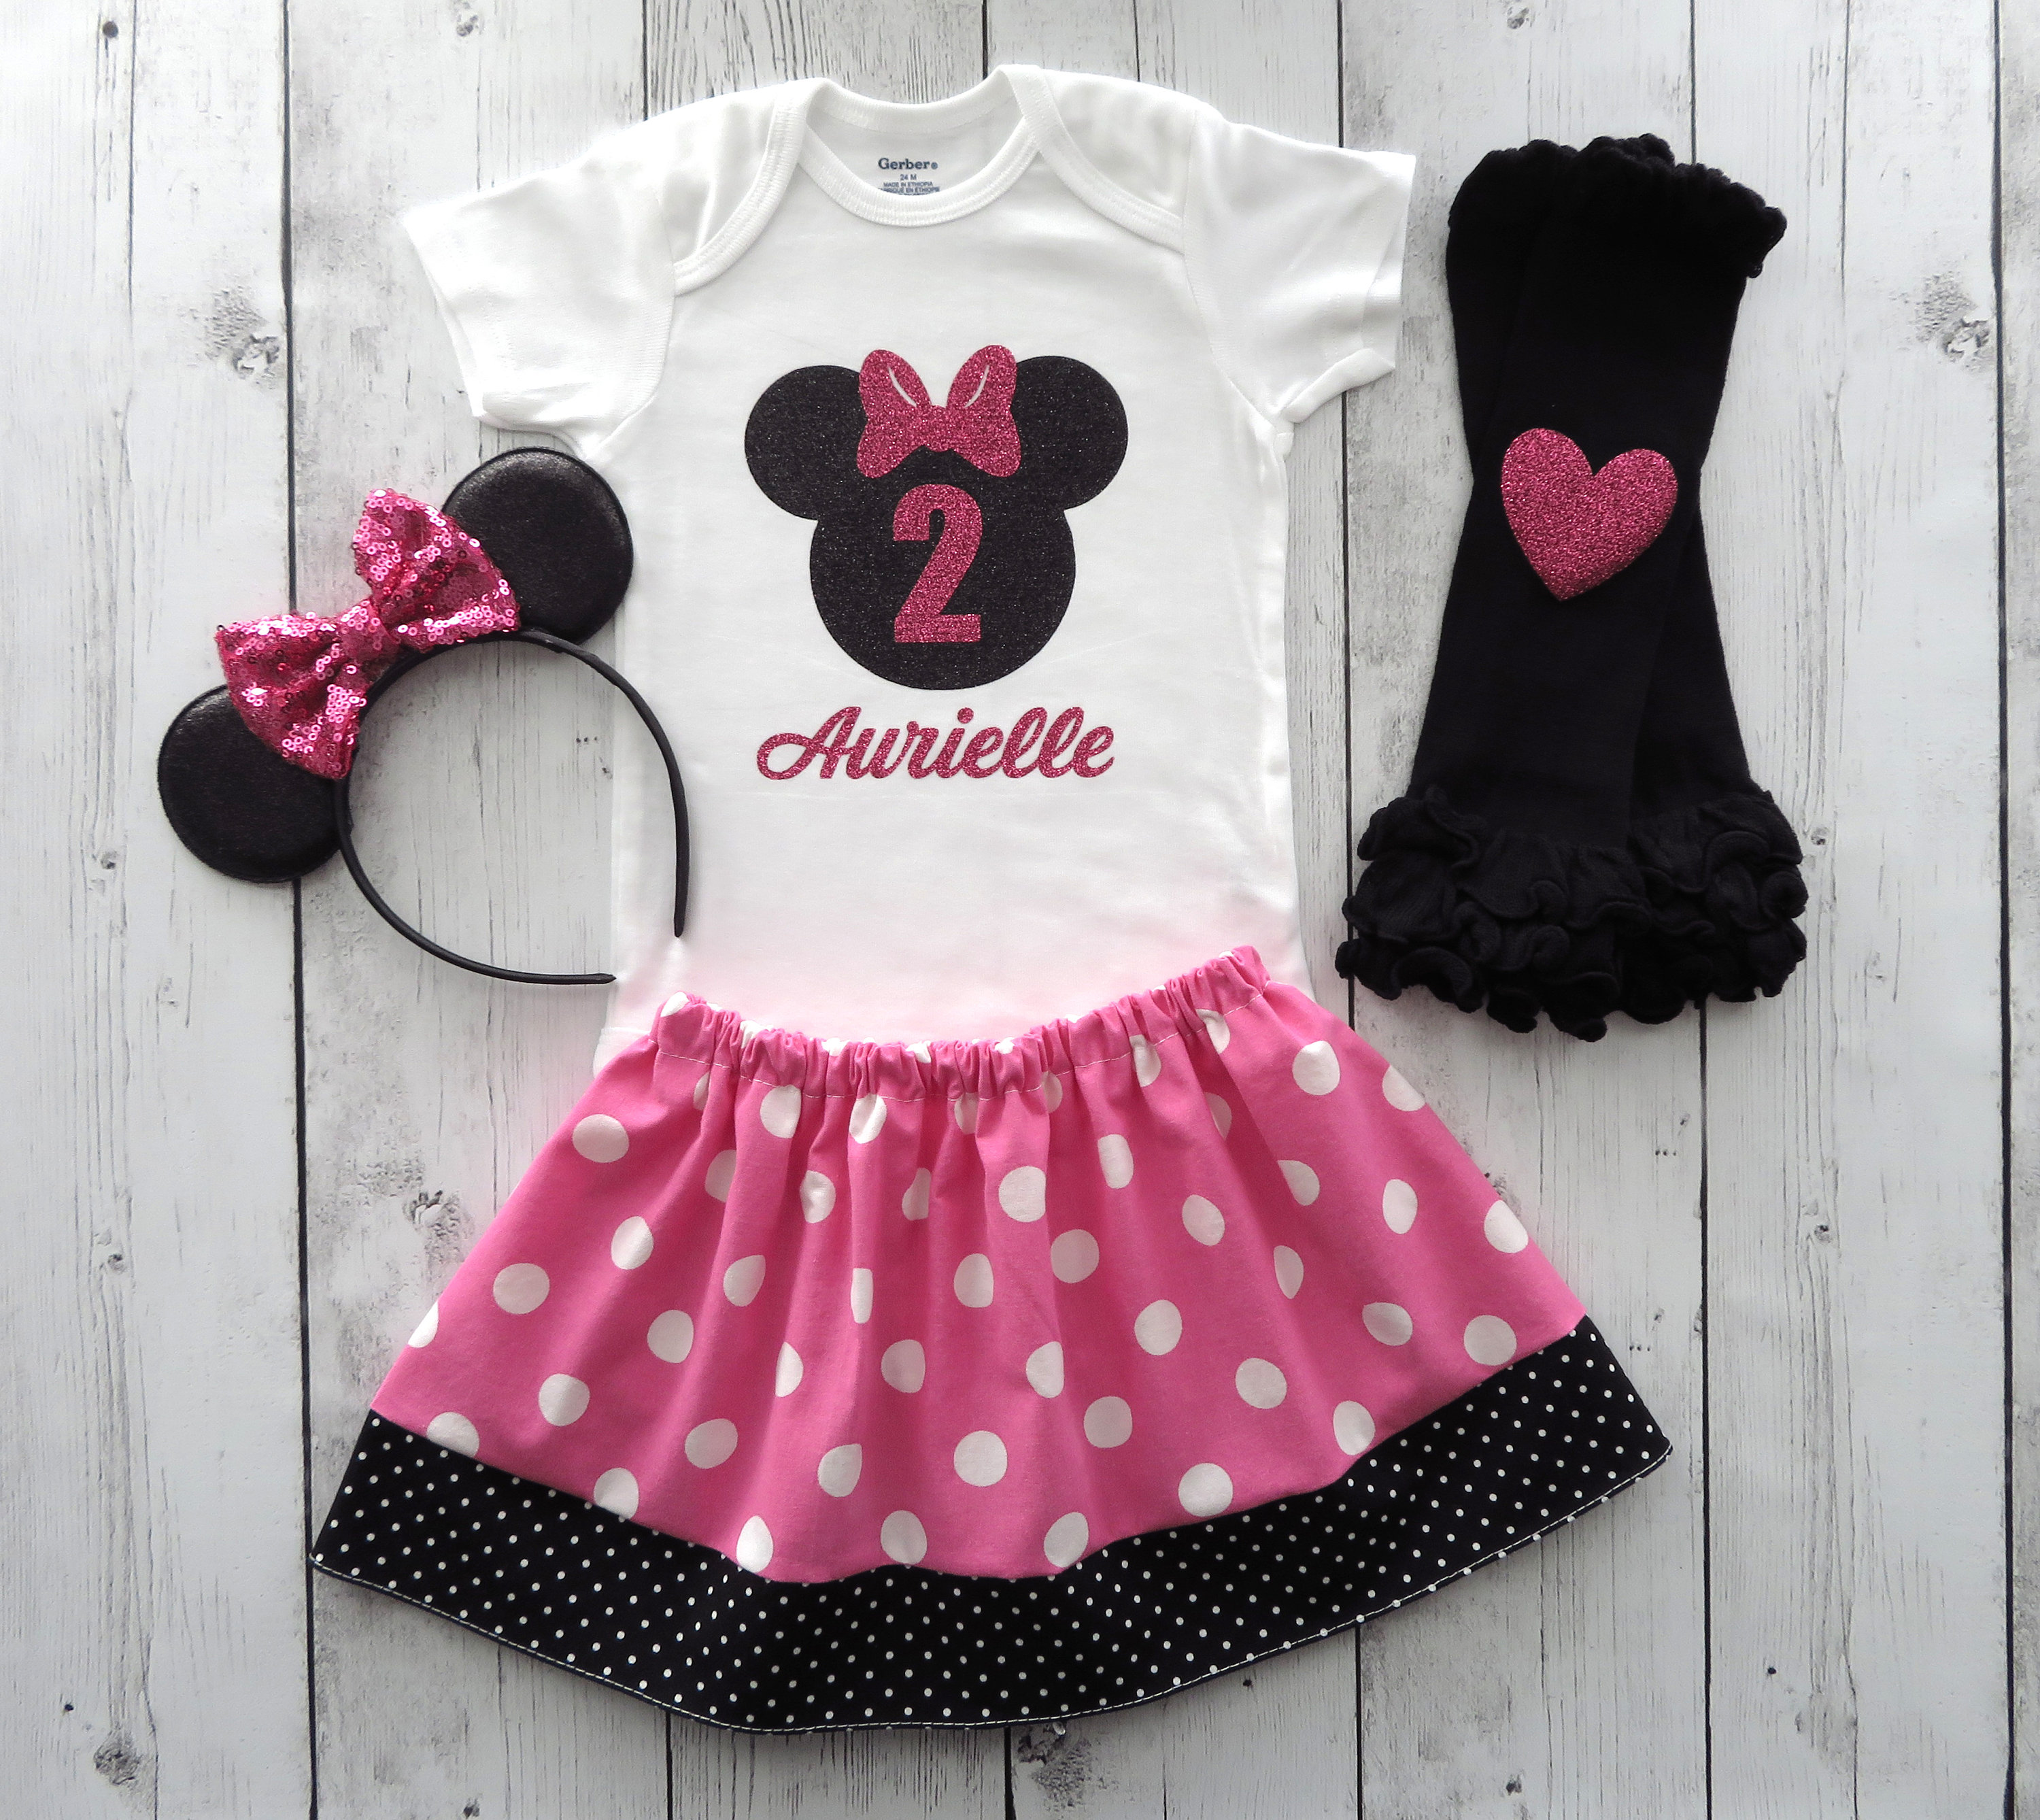 Minnie Mouse Second Birthday Outfit in pink polka dots with Minnie Ears - girl 2nd birthday, minnie mouse birthday party,